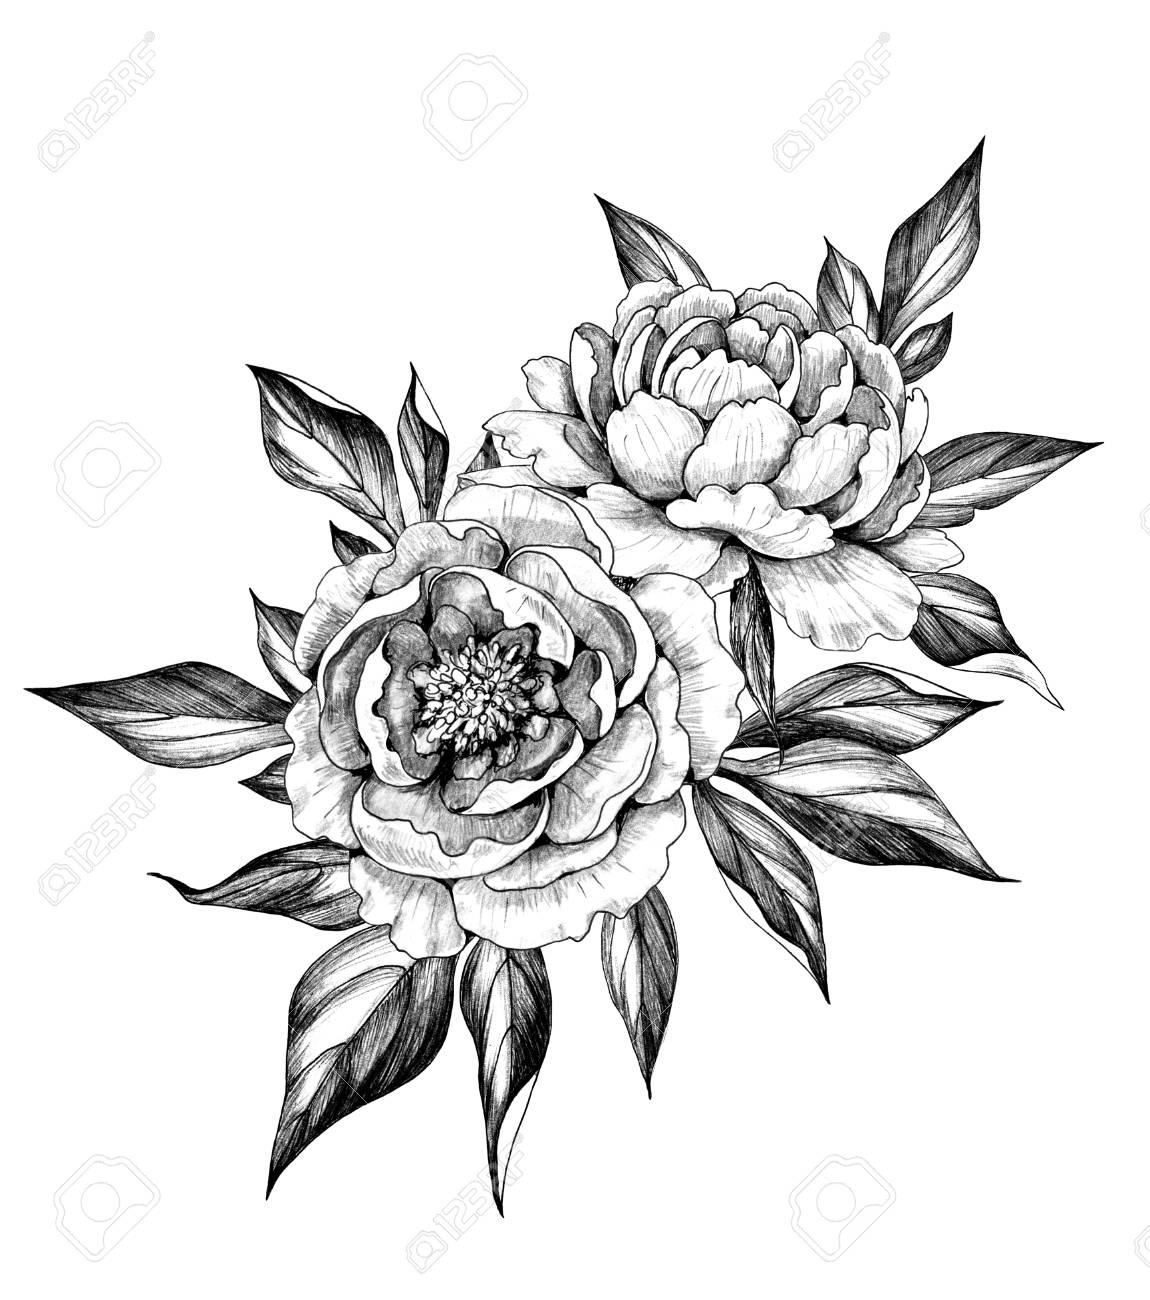 Hand drawn floral bunch with two peony flowers and leaves isolated